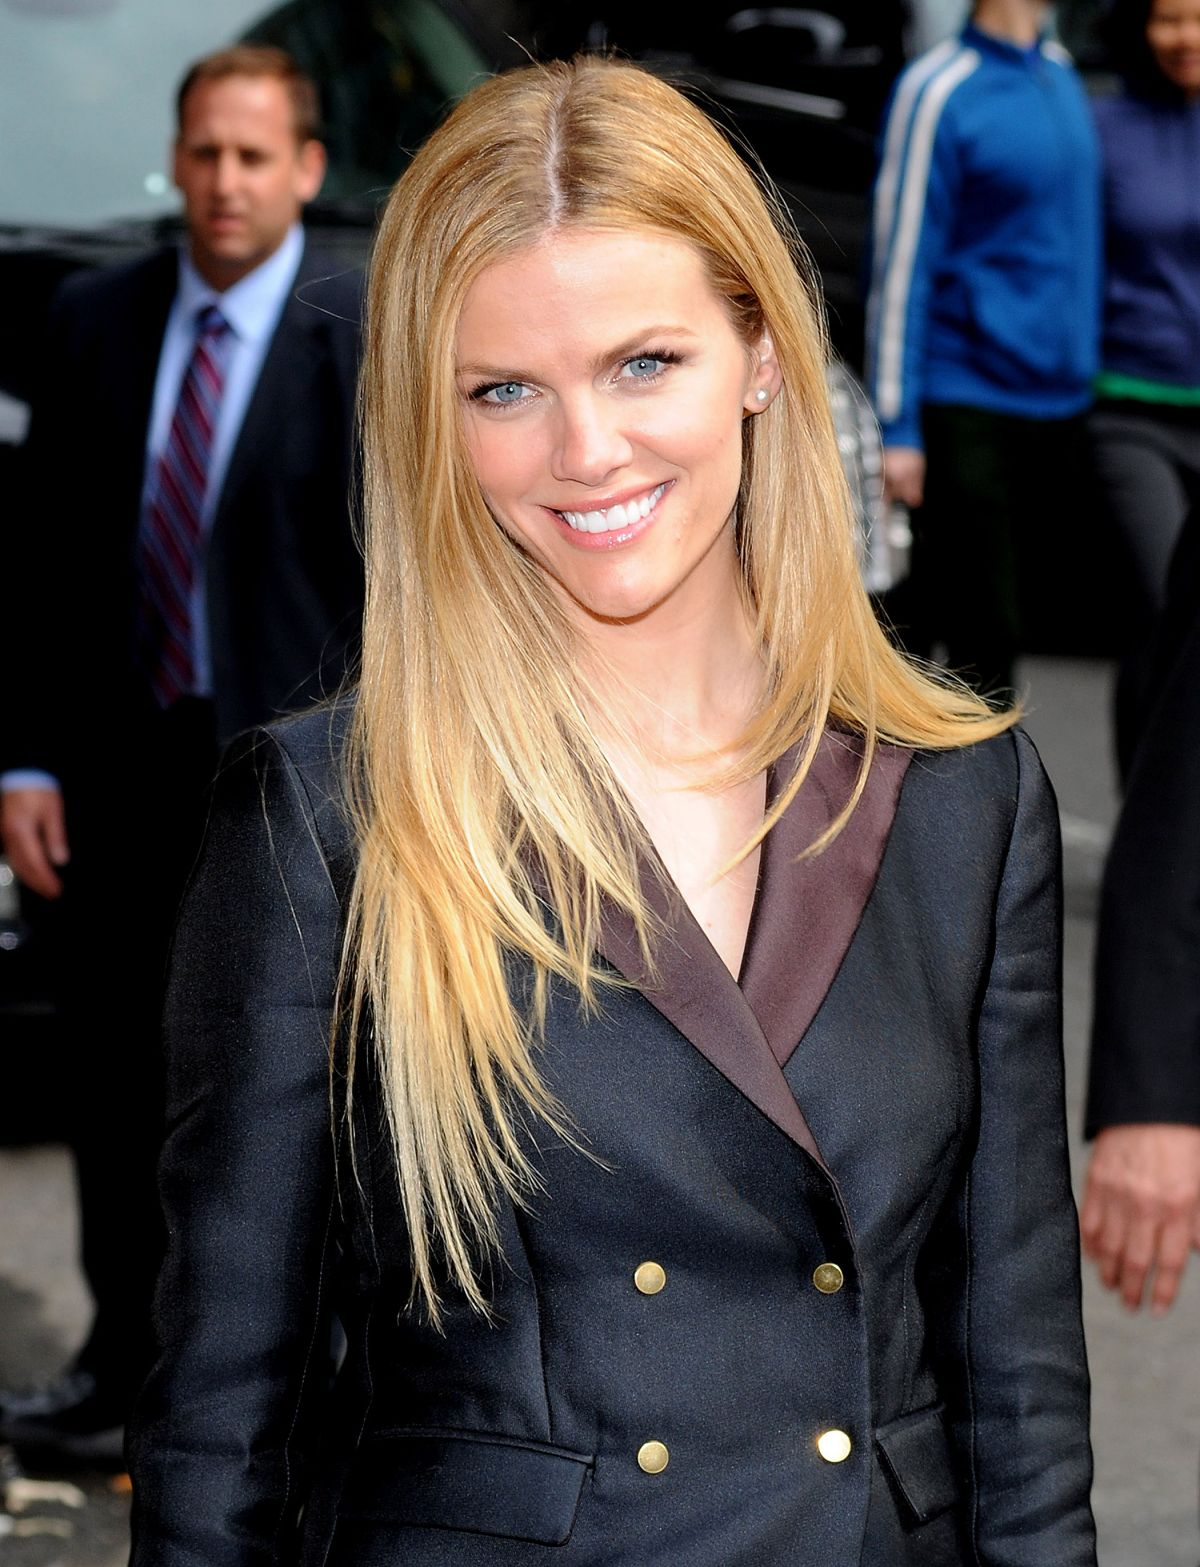 BROOKLYN DECKER Arrives at Late Show with David Letterman in New York